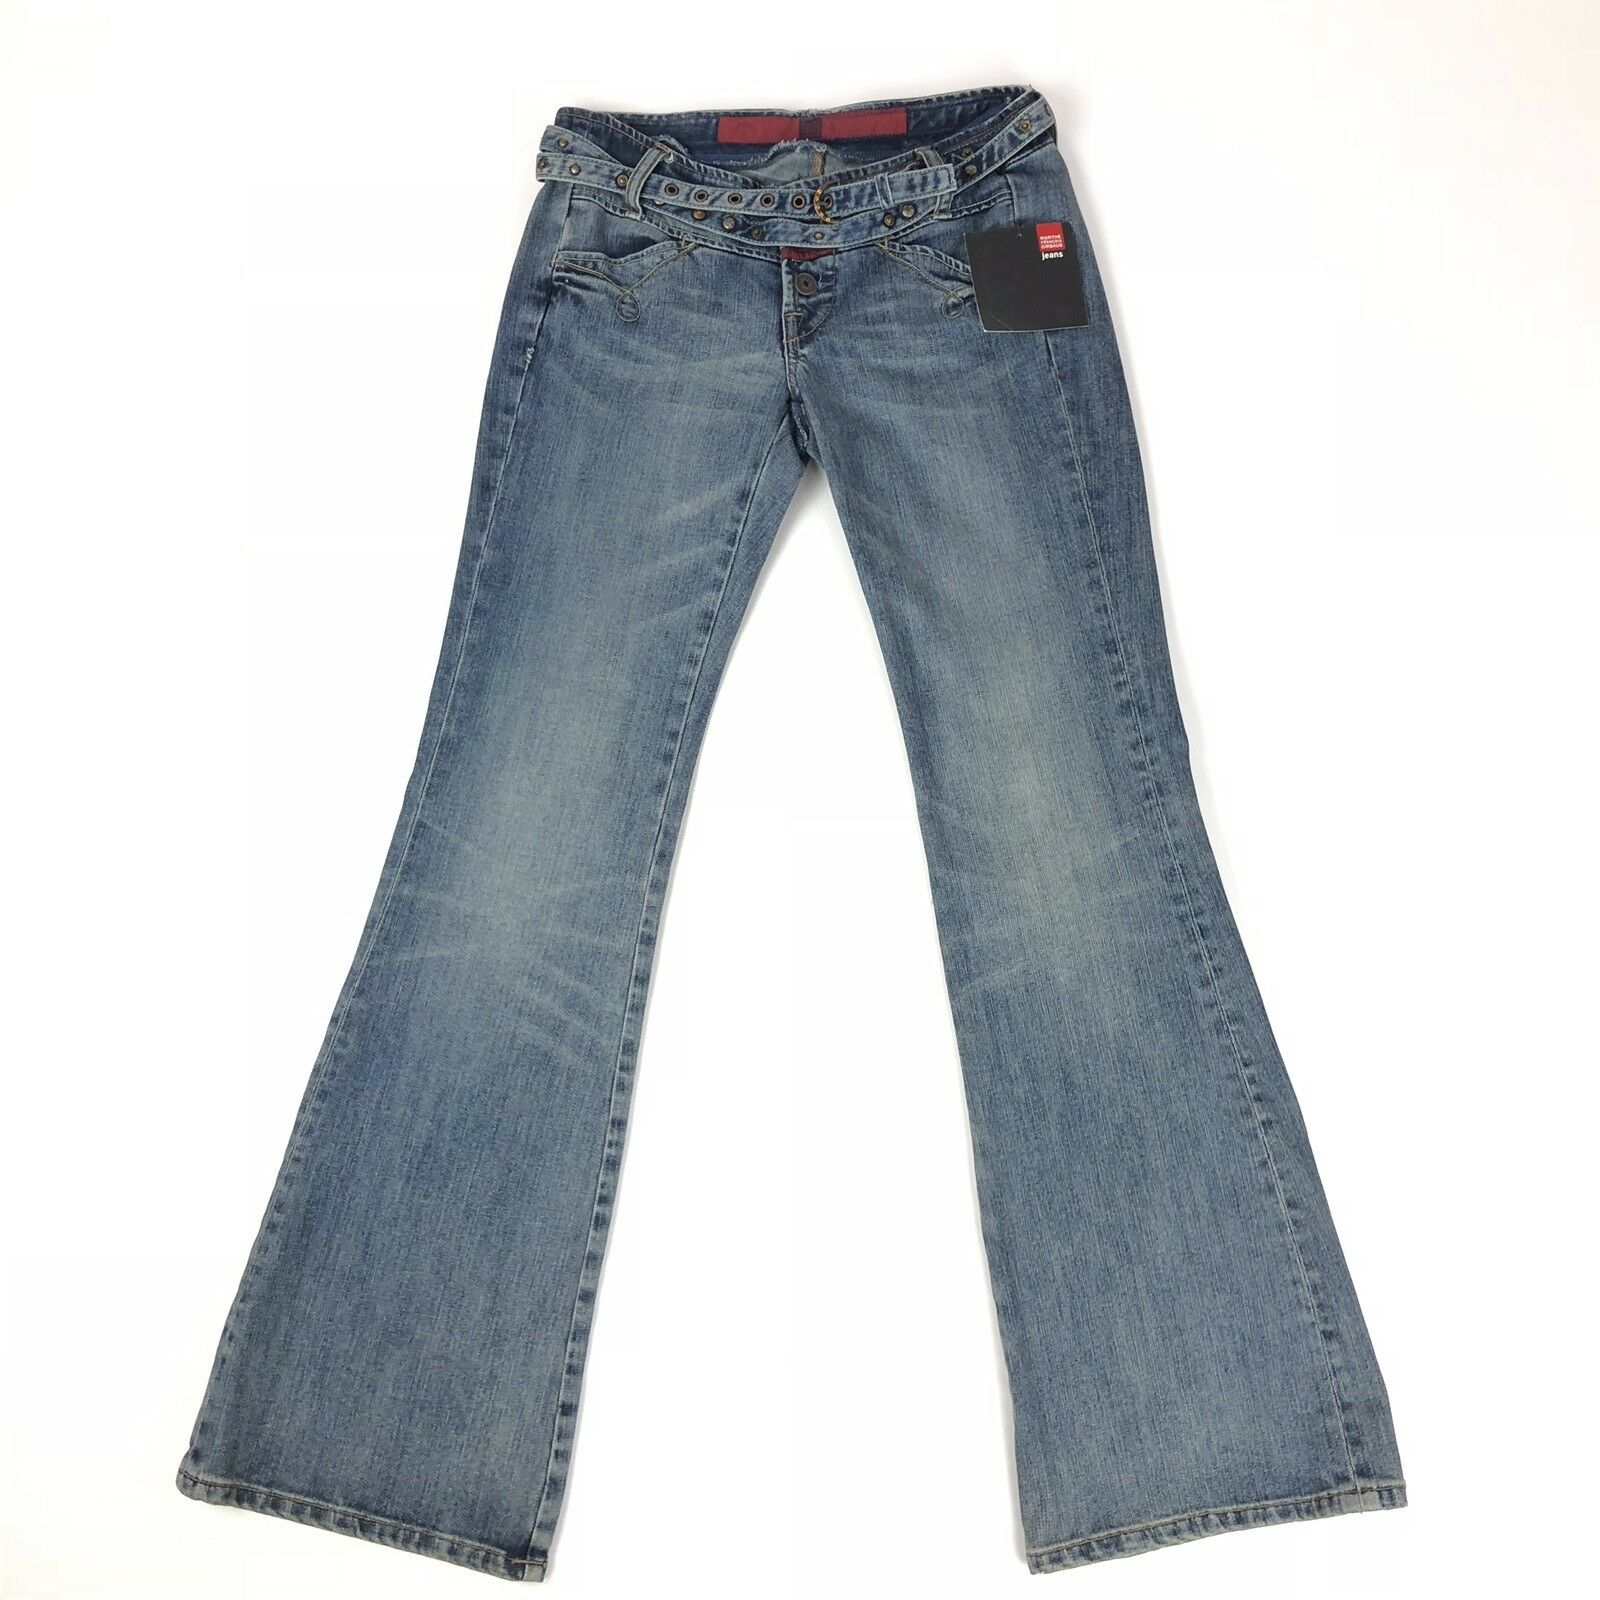 Marithe Francois Girbaud VTG Womens 28 Rodeo Gal Jeans Button Fly Belt Bootcut